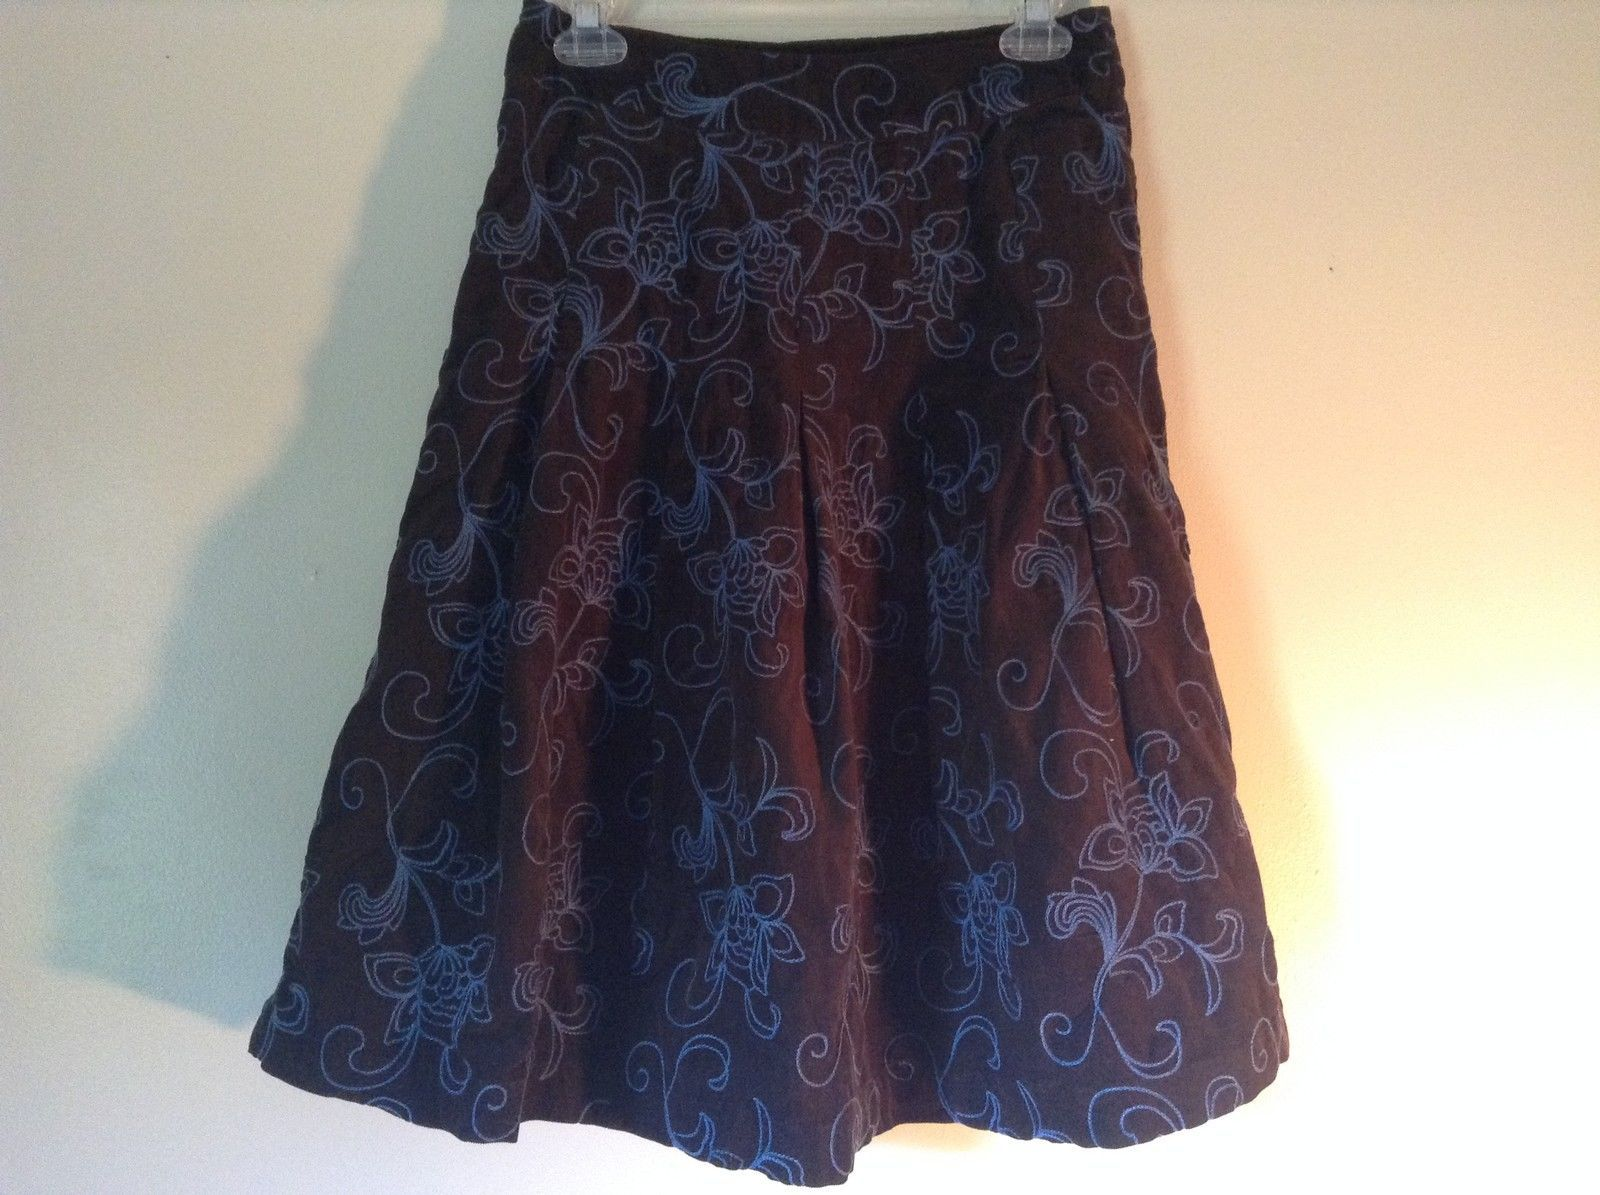 Brown with Blue Flowers Corduroy Skirt by Boden No Size Tag Measurements Below